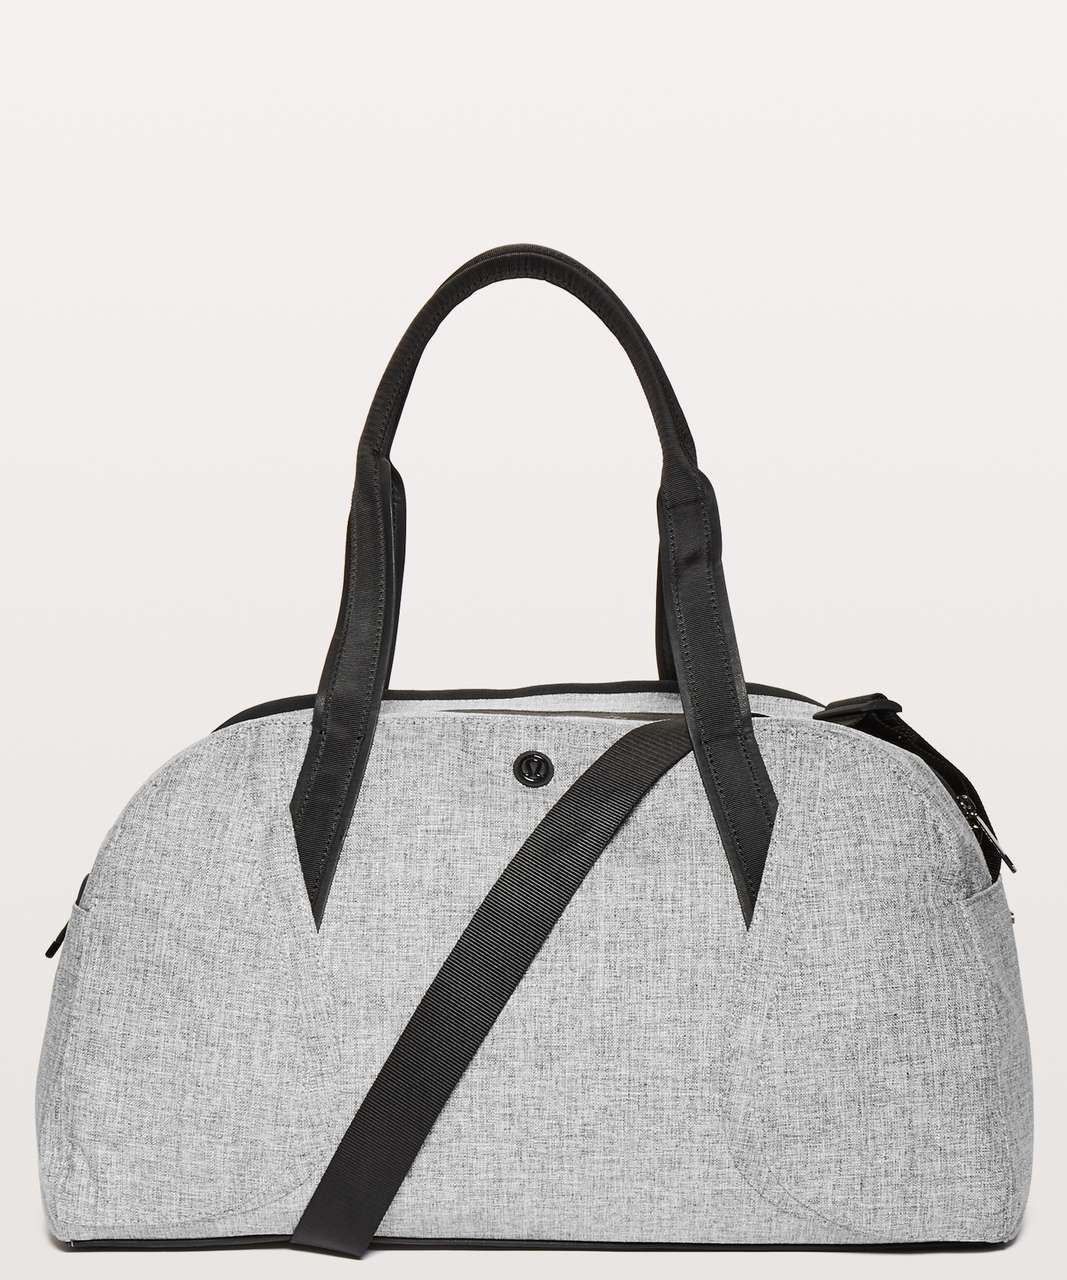 ada144f669b Color: heathered black. Ready, set, weekend. This roomy duffel has  compartments for everything you need (plus a laptop).Fabric is  water-repellent and easy ...